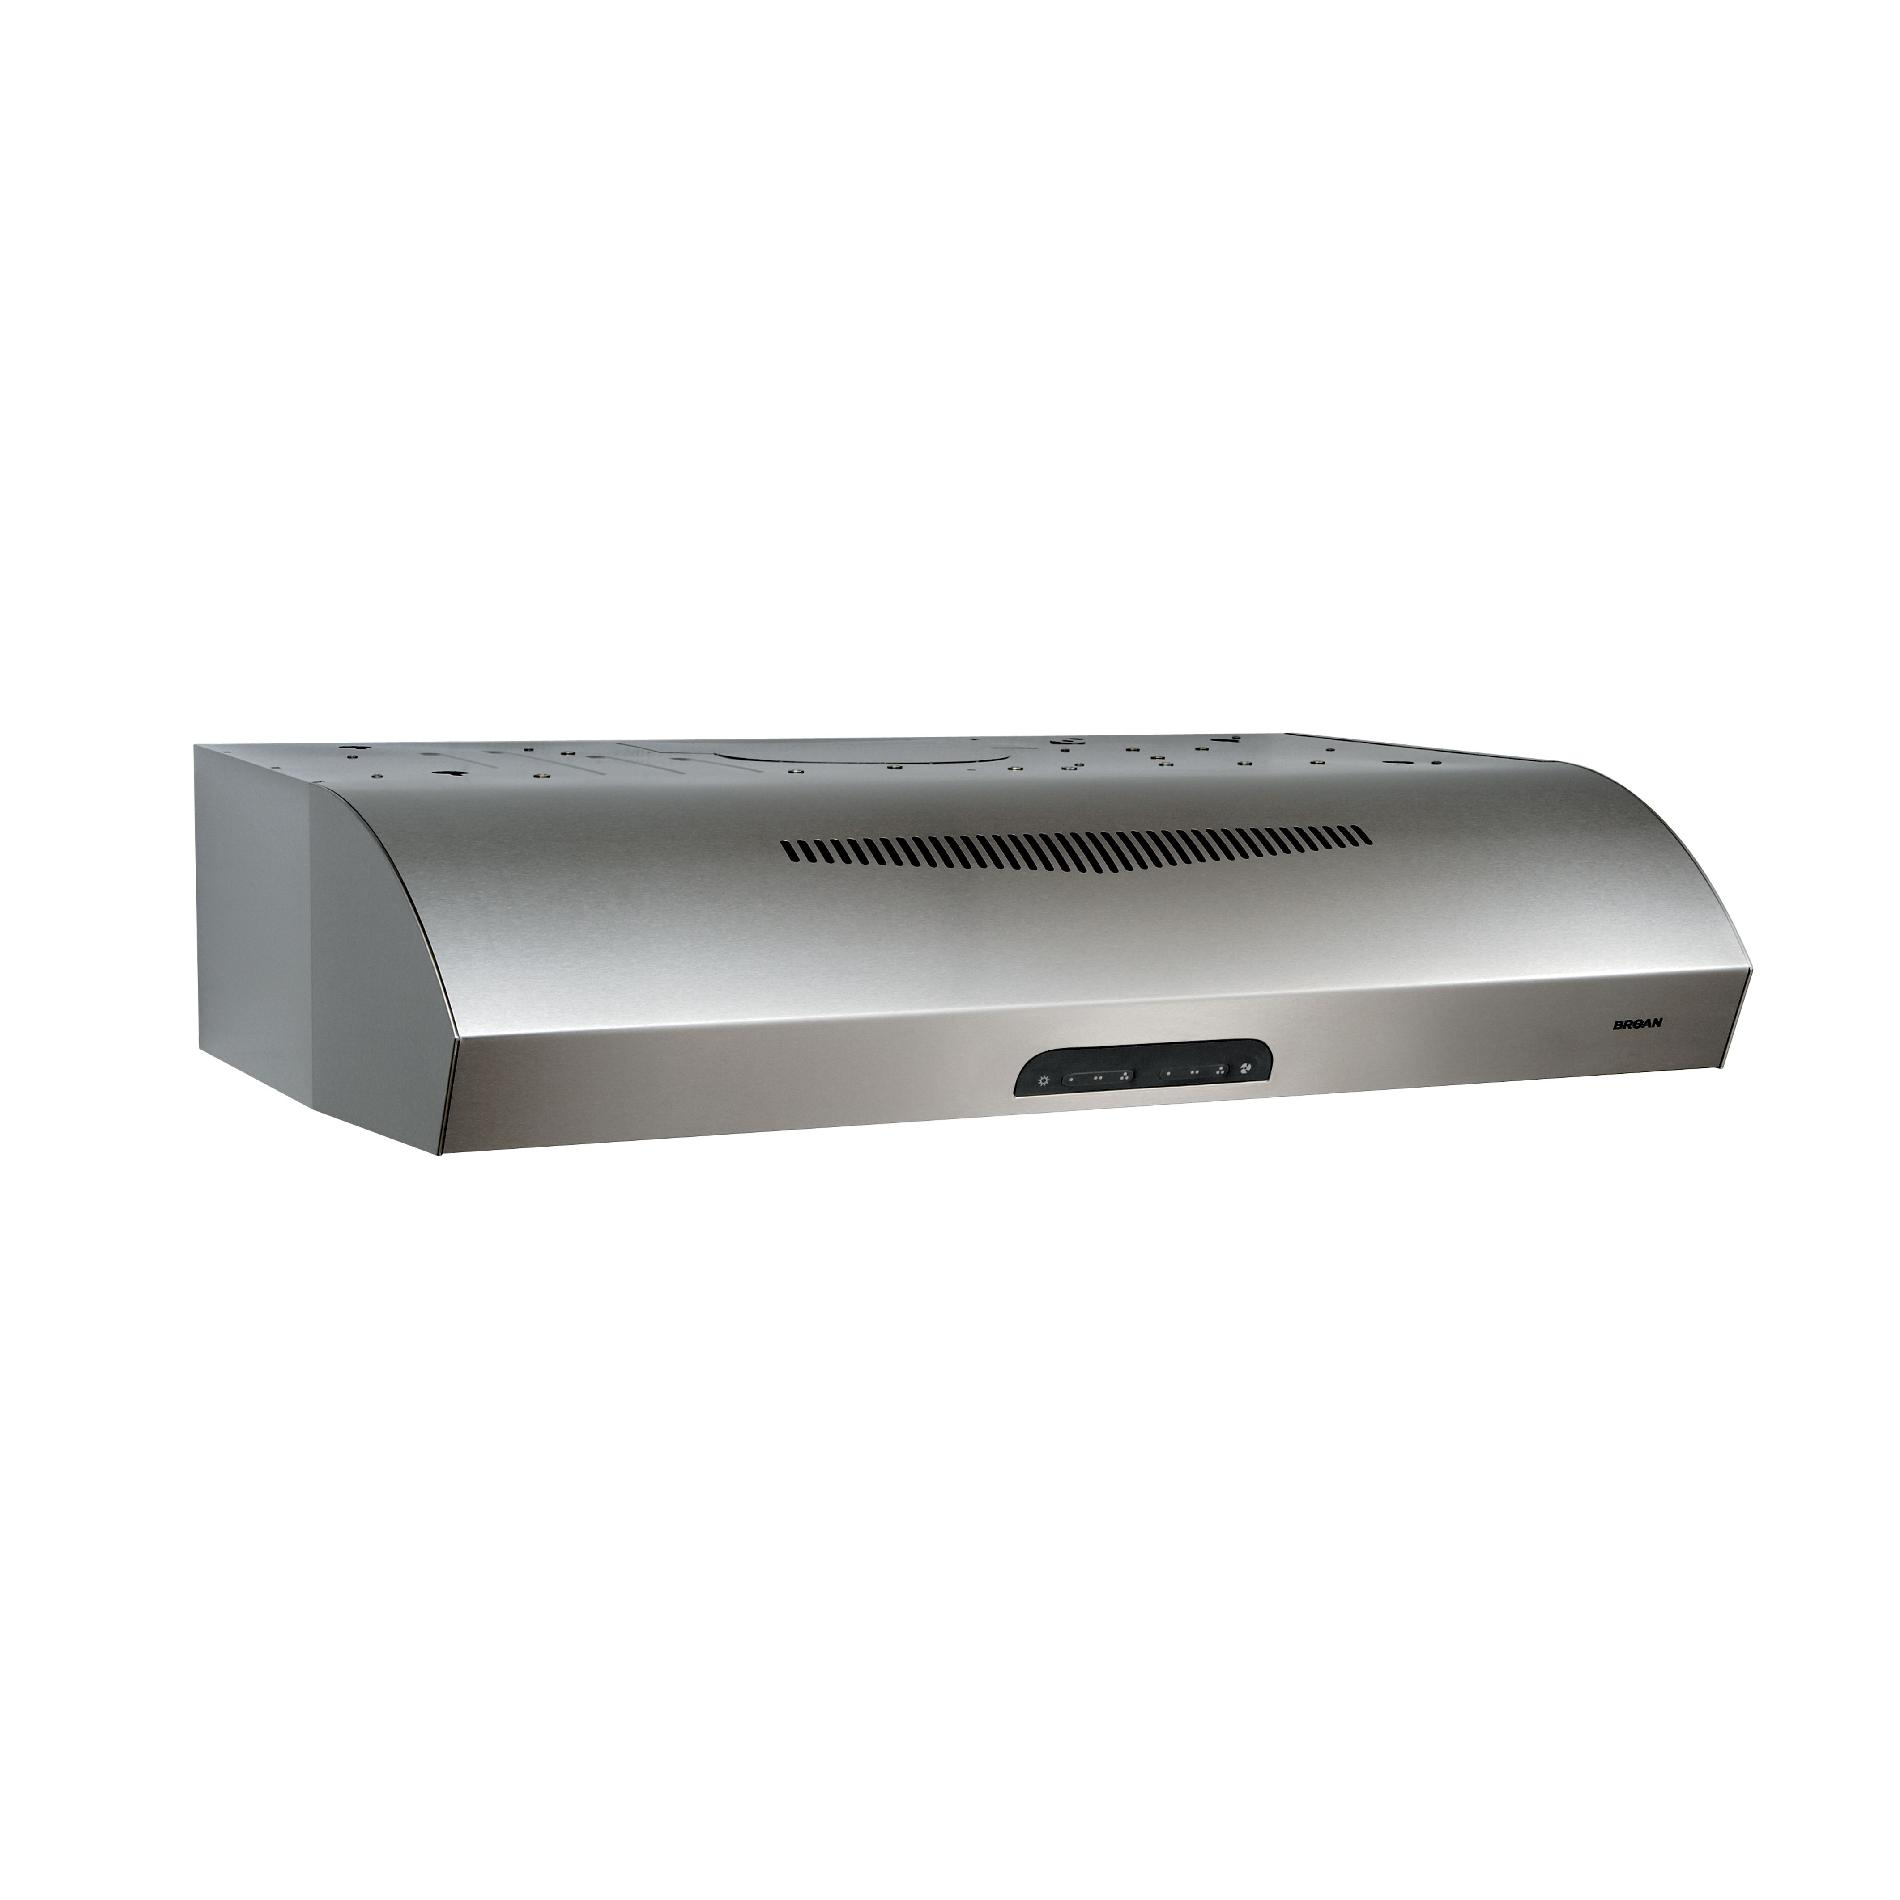 "Broan QP242SS 42"" 350 CFM Under Cabinet Range Hood - Stainless Steel"